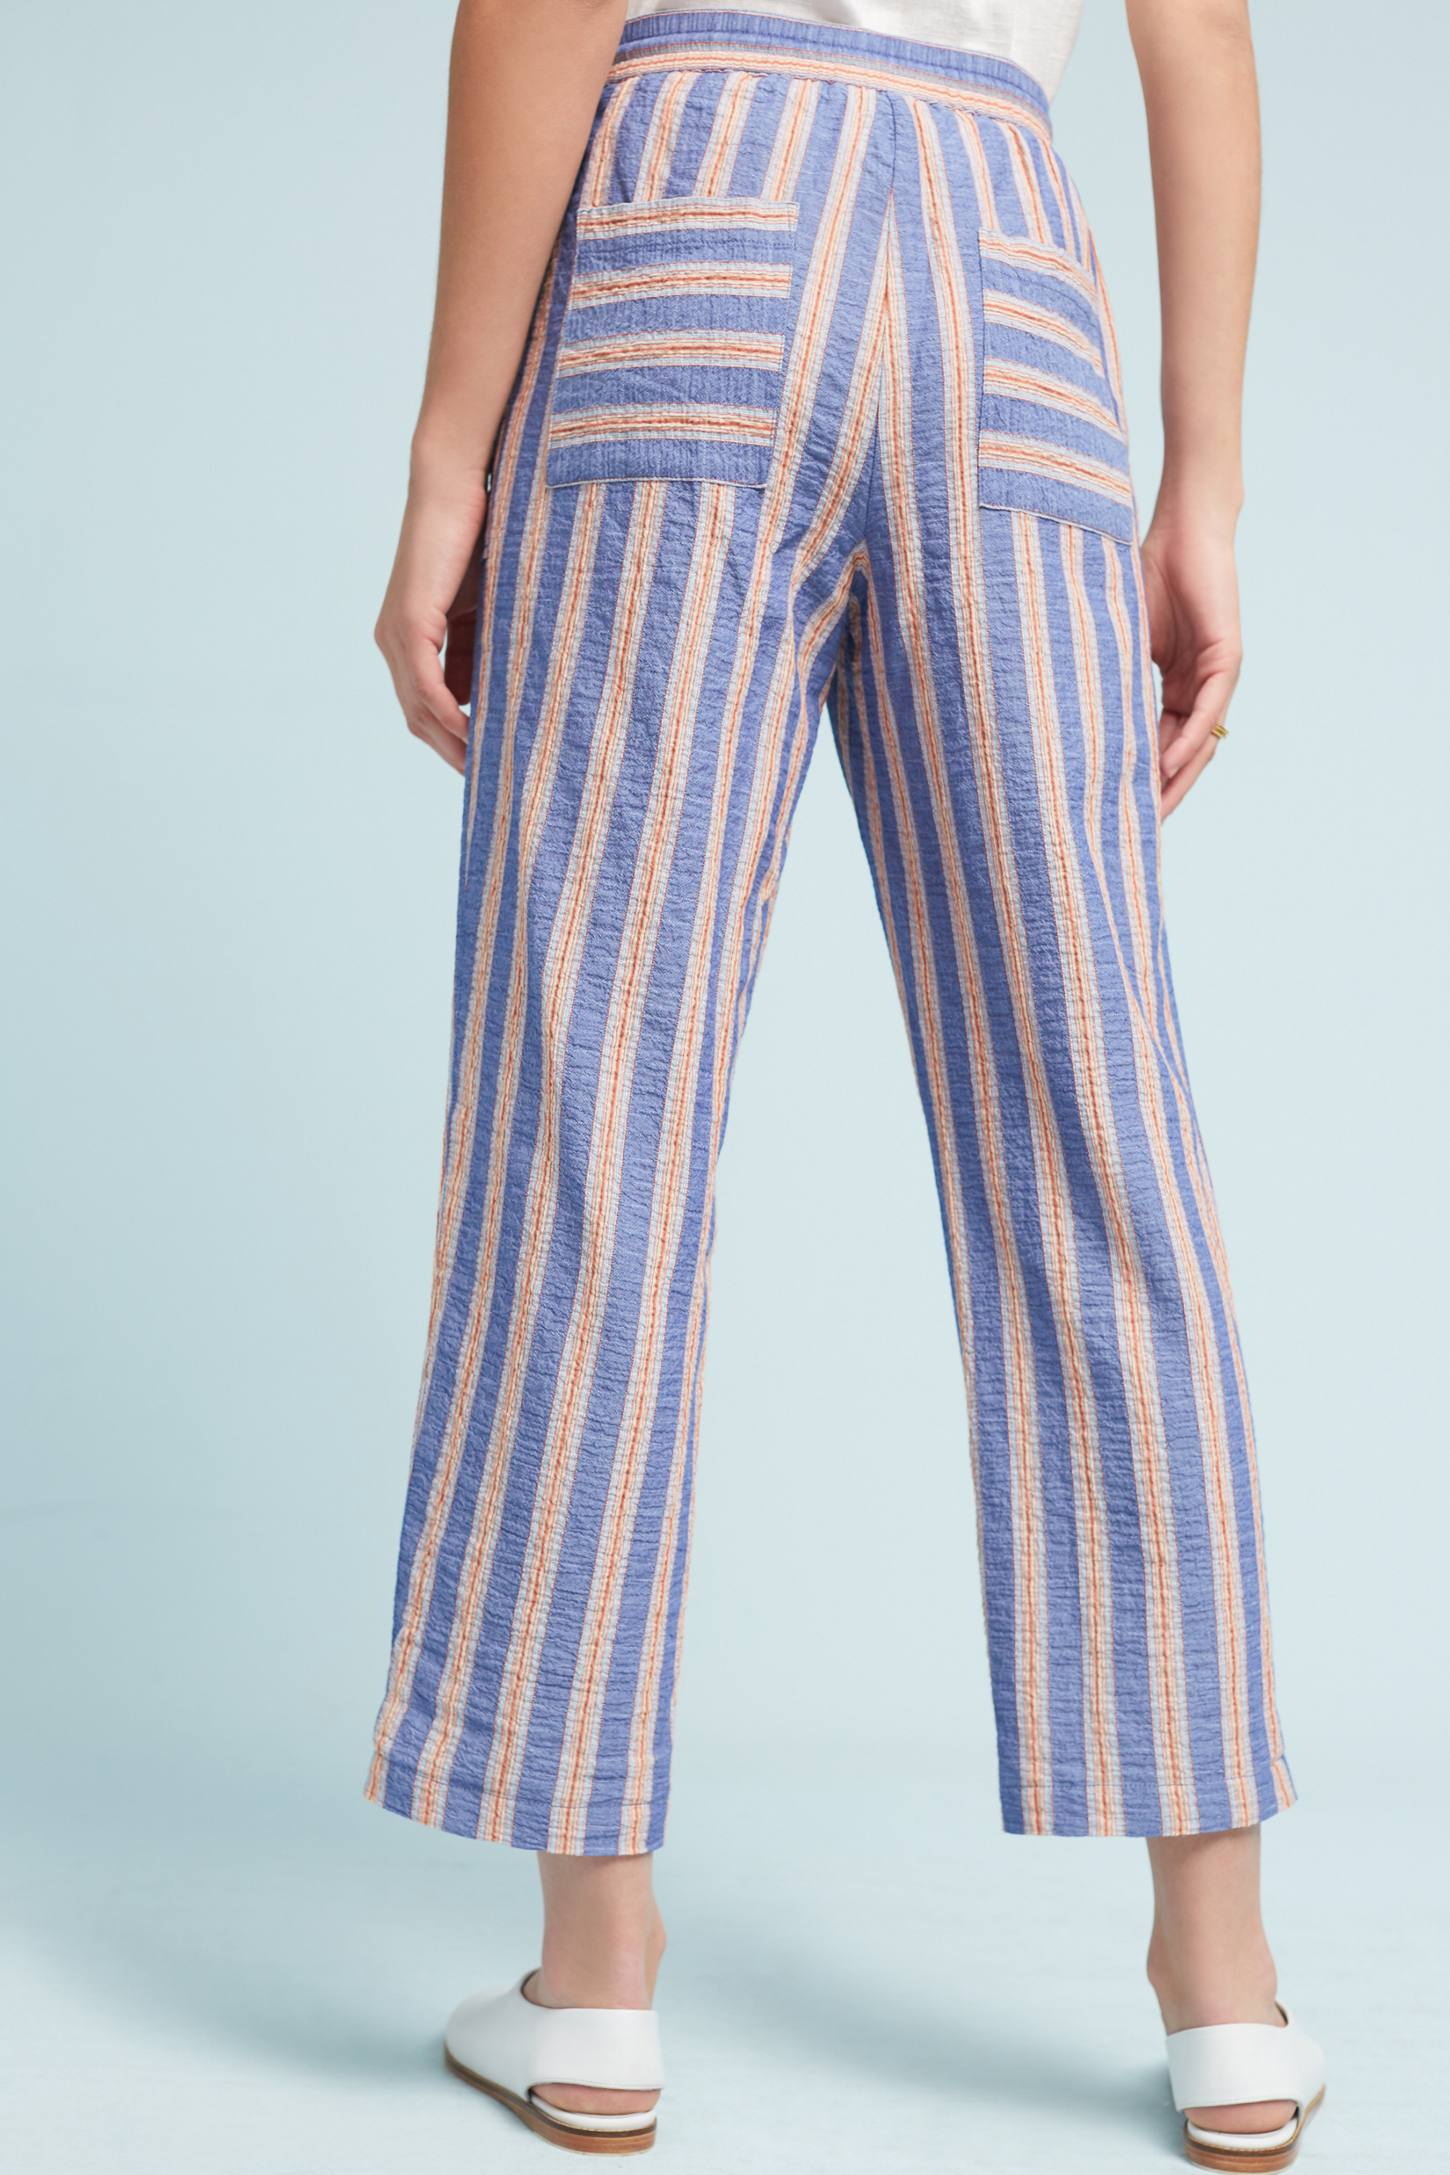 Slide View: 4: Beachside Striped Pants